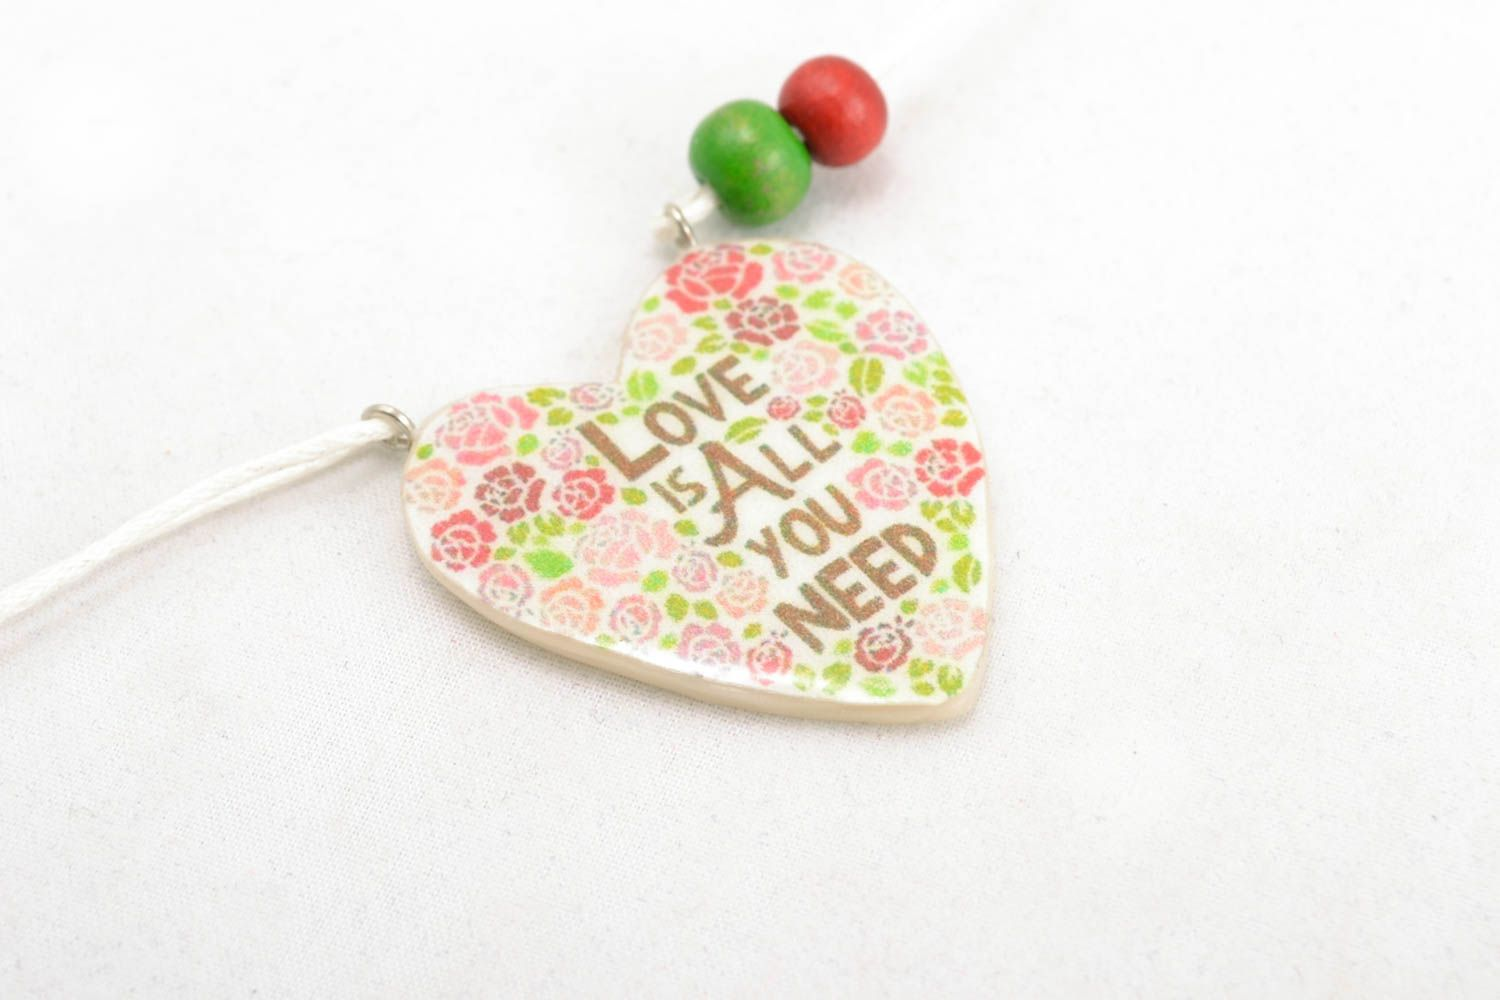 Polymer clay pendant with photo print photo 3